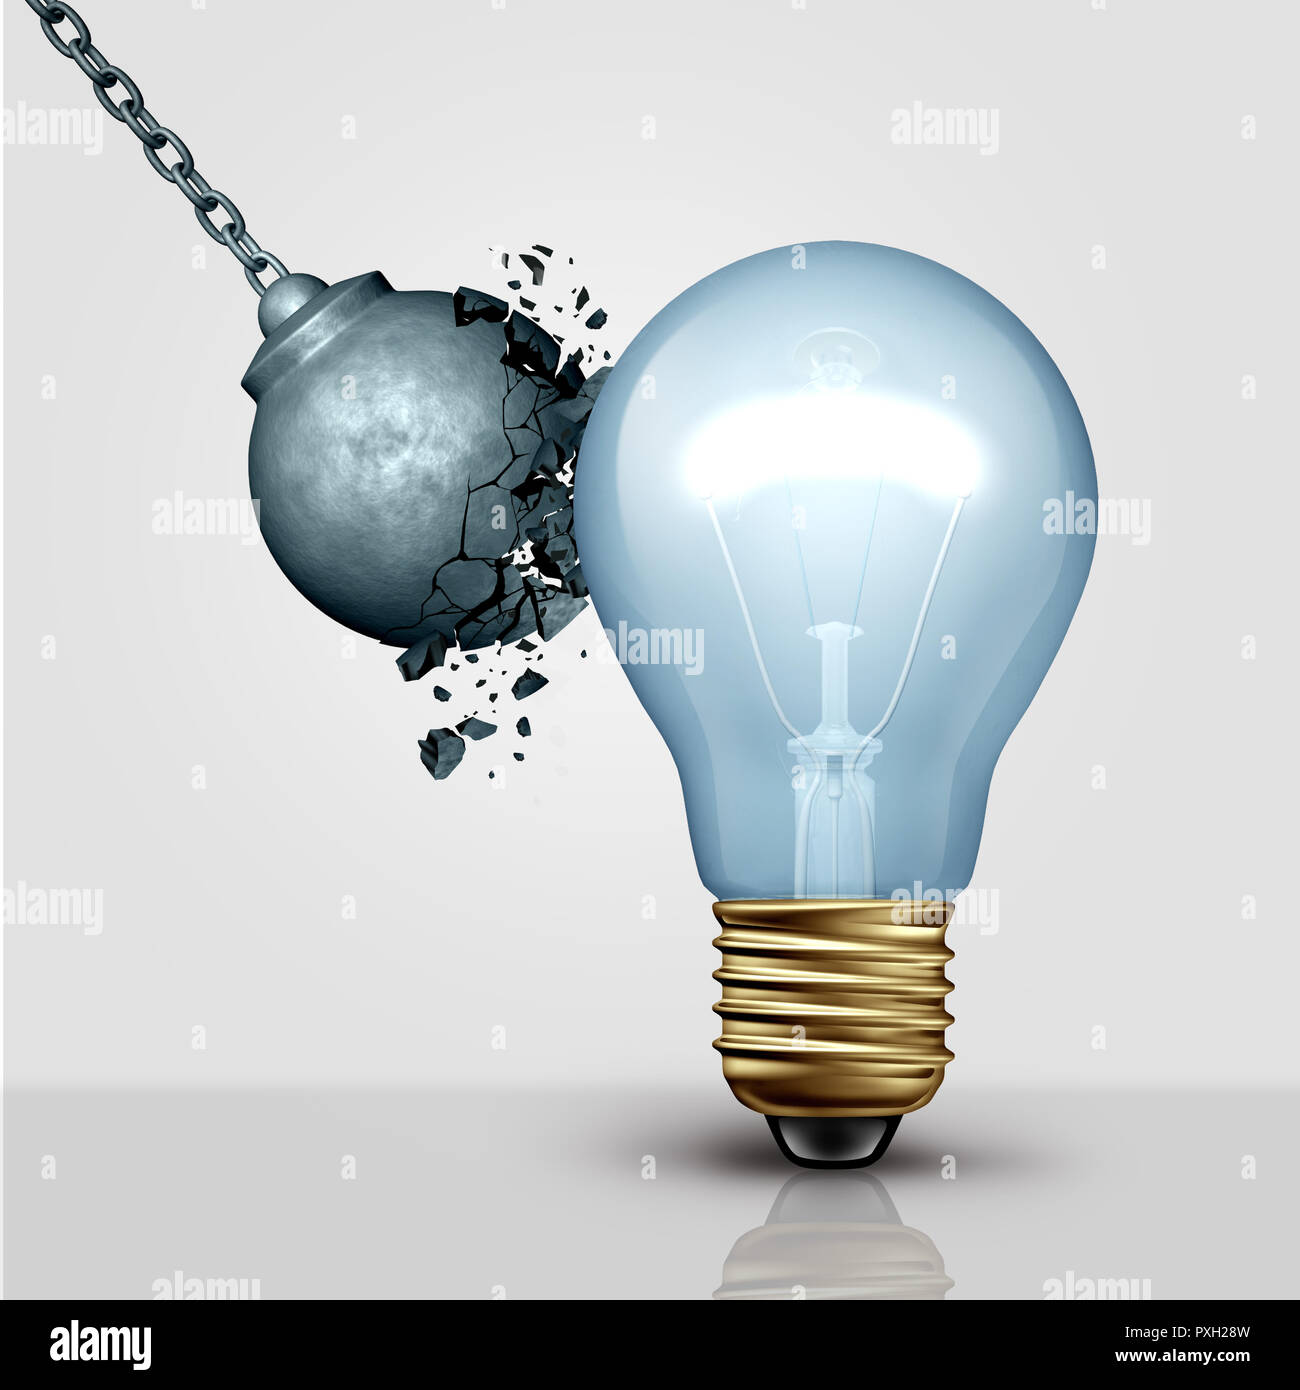 Strong creative idea metaphor and creativity strength as a wrecking ball destroyed by a light bulb as a symbol for great thinking and brainstorming. - Stock Image